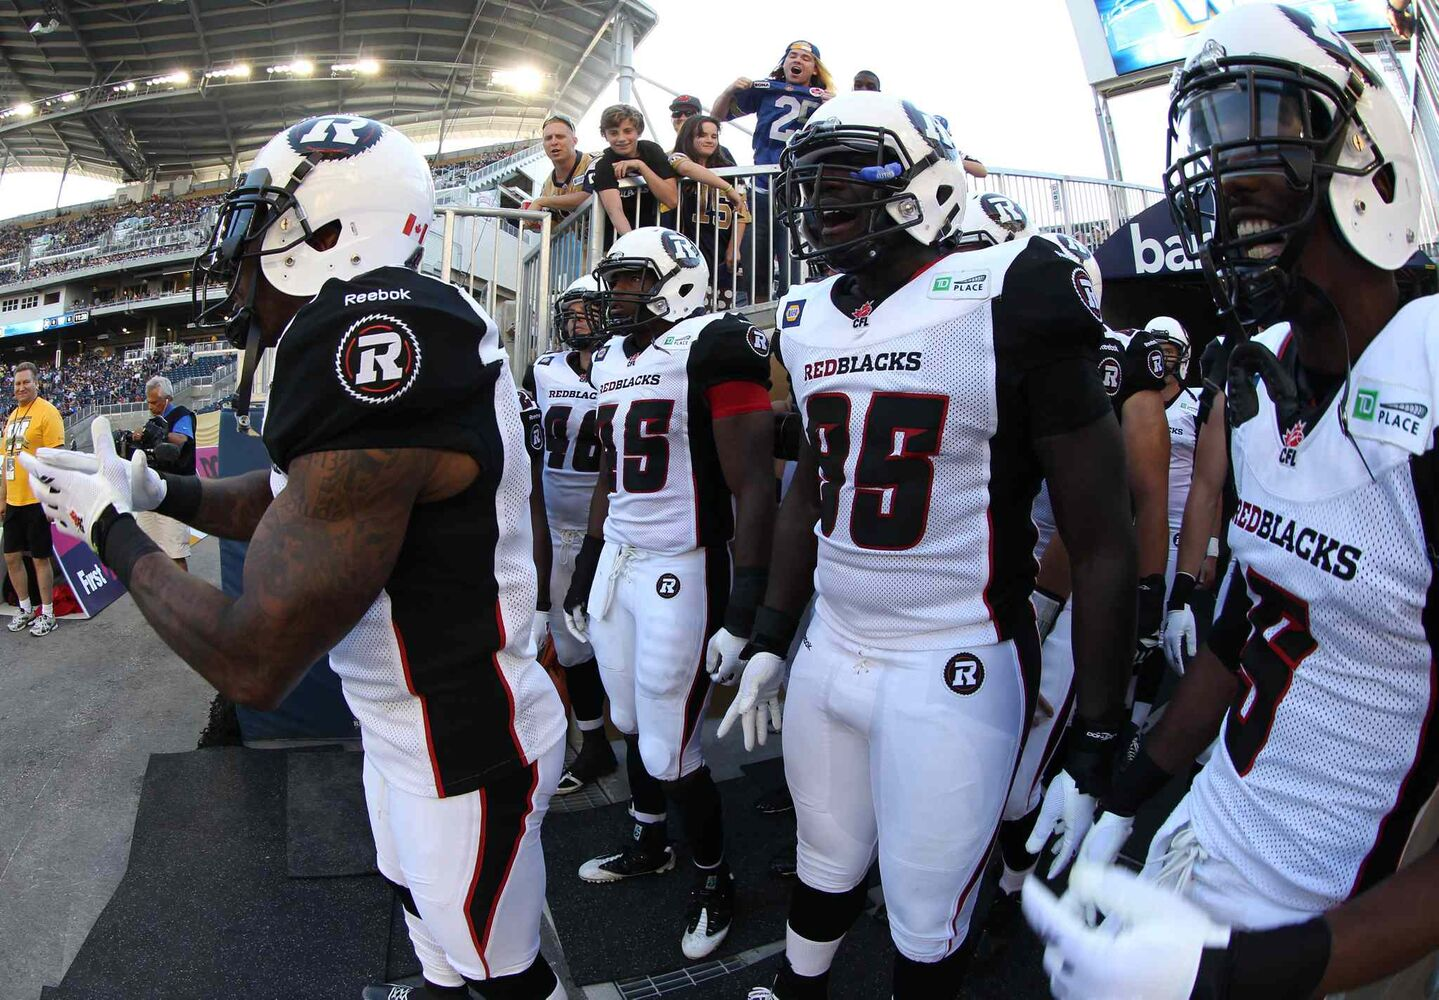 Former Winnipeg Blue Bombers player Jovon Johnson, left, now playing with the Ottawa Redblacks, leads his team onto the field for the Redblacks' first-ever CFL game at Investors Group Field in Winnipeg. (JOE BRYKSA / WINNIPEG FREE PRESS)